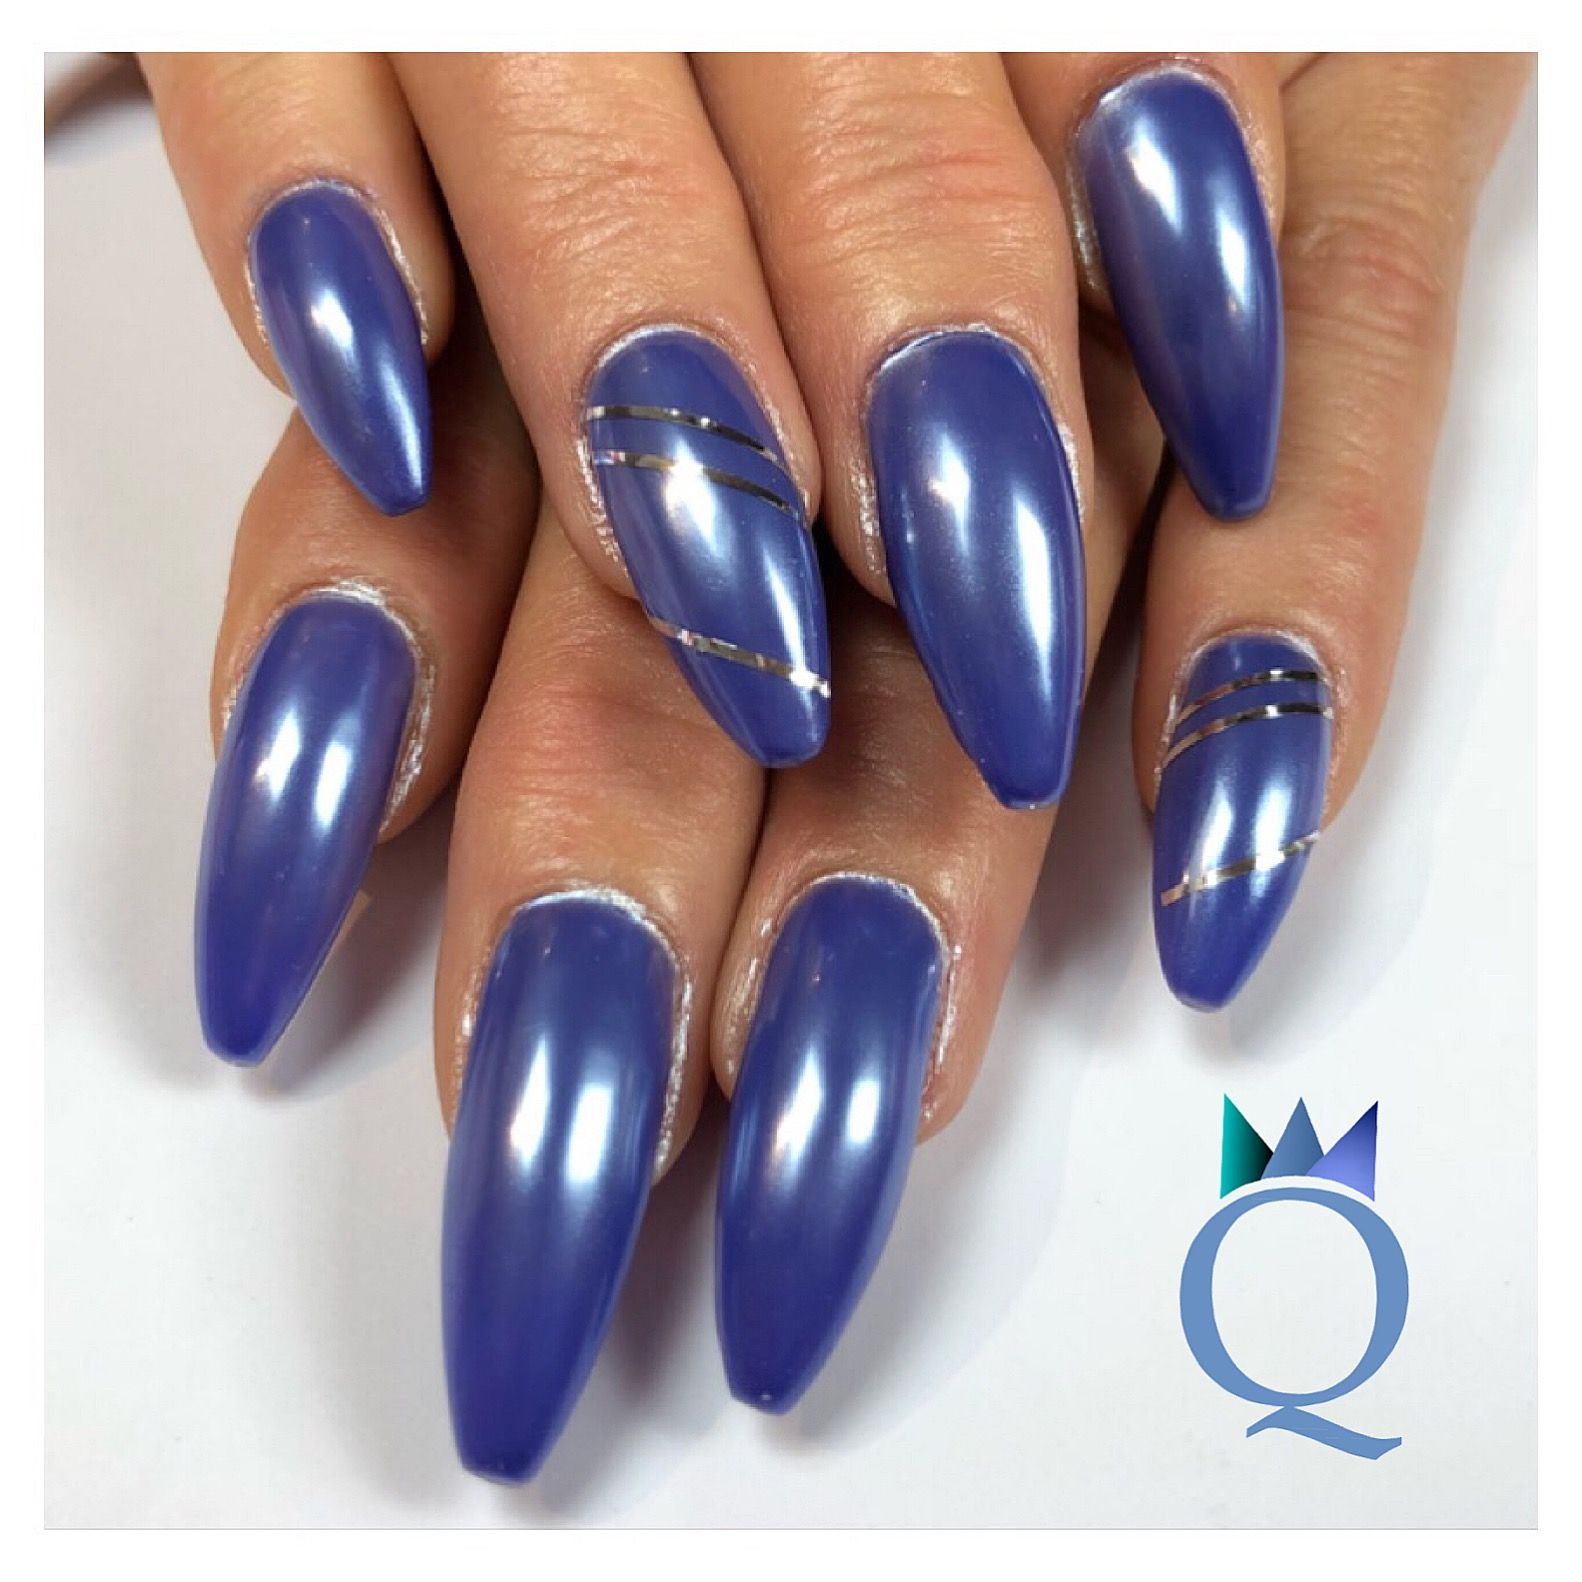 Coole Gelnägel Coffinnails Gelnails Nails Blue Chrome Ballerinaform